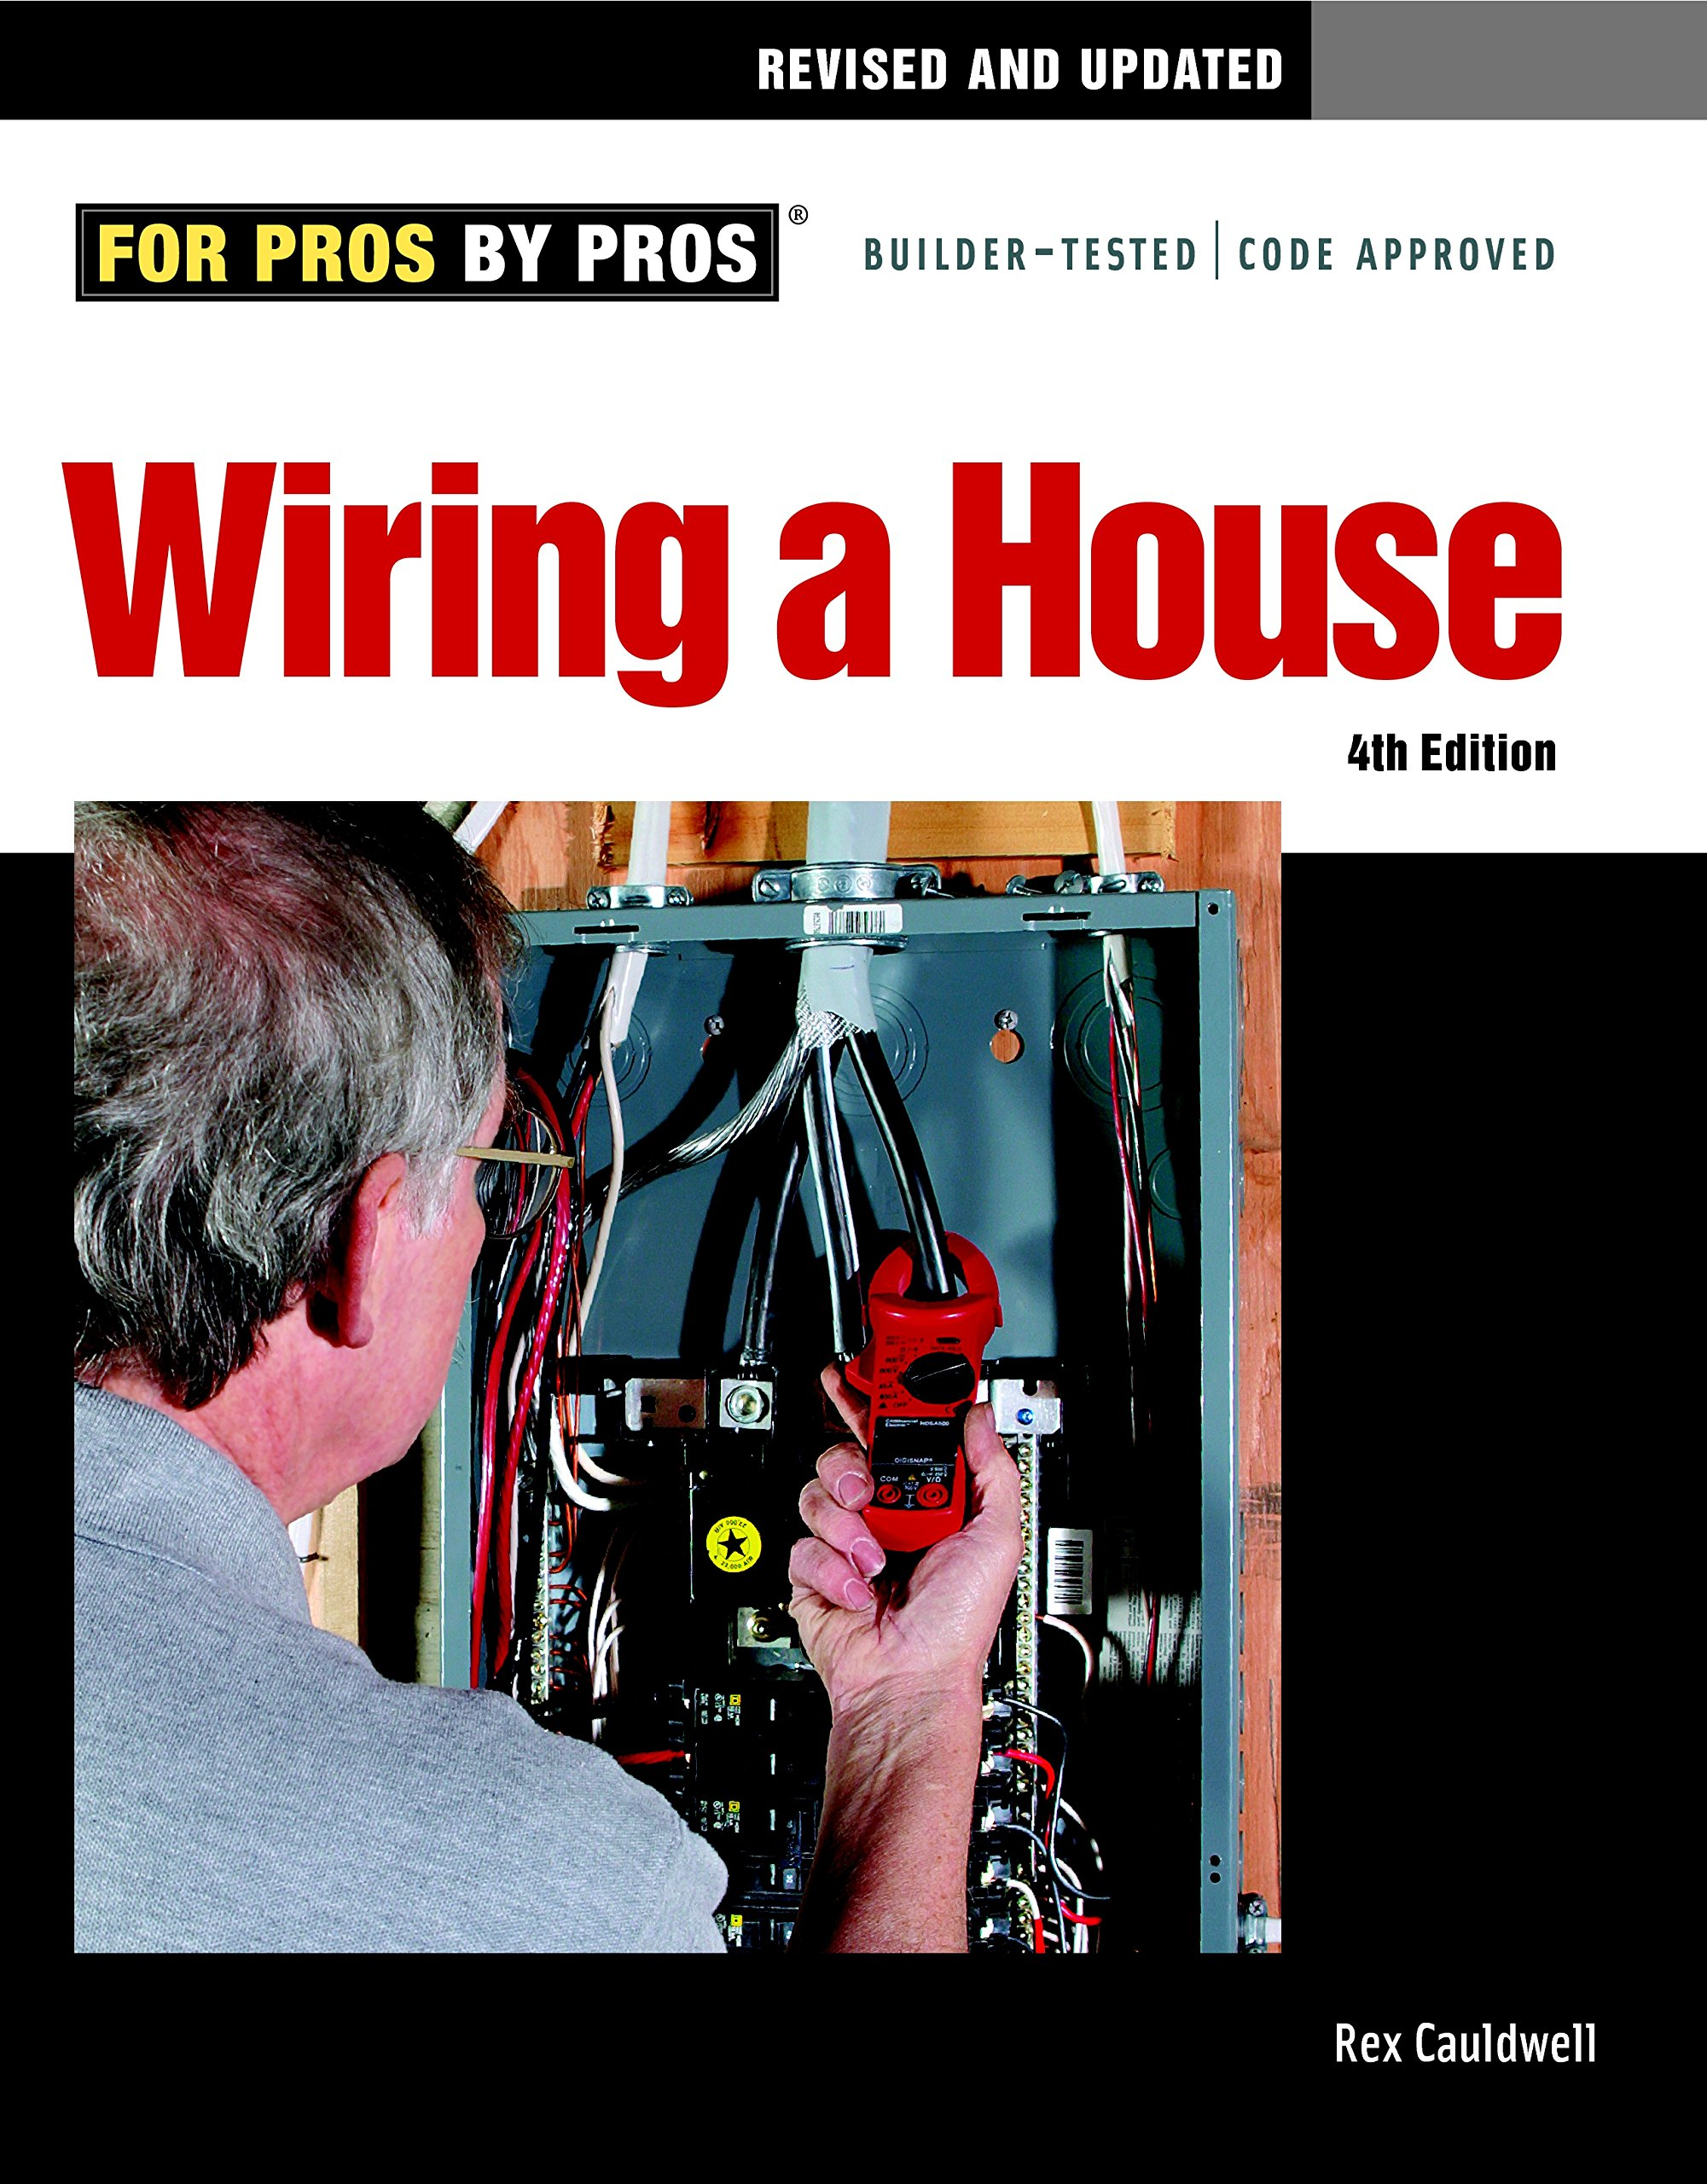 wiring a house 4th edition for pros by pros rex cauldwell rh amazon com House Wiring Diagram Examples rex cauldwell wiring a house 4th edition